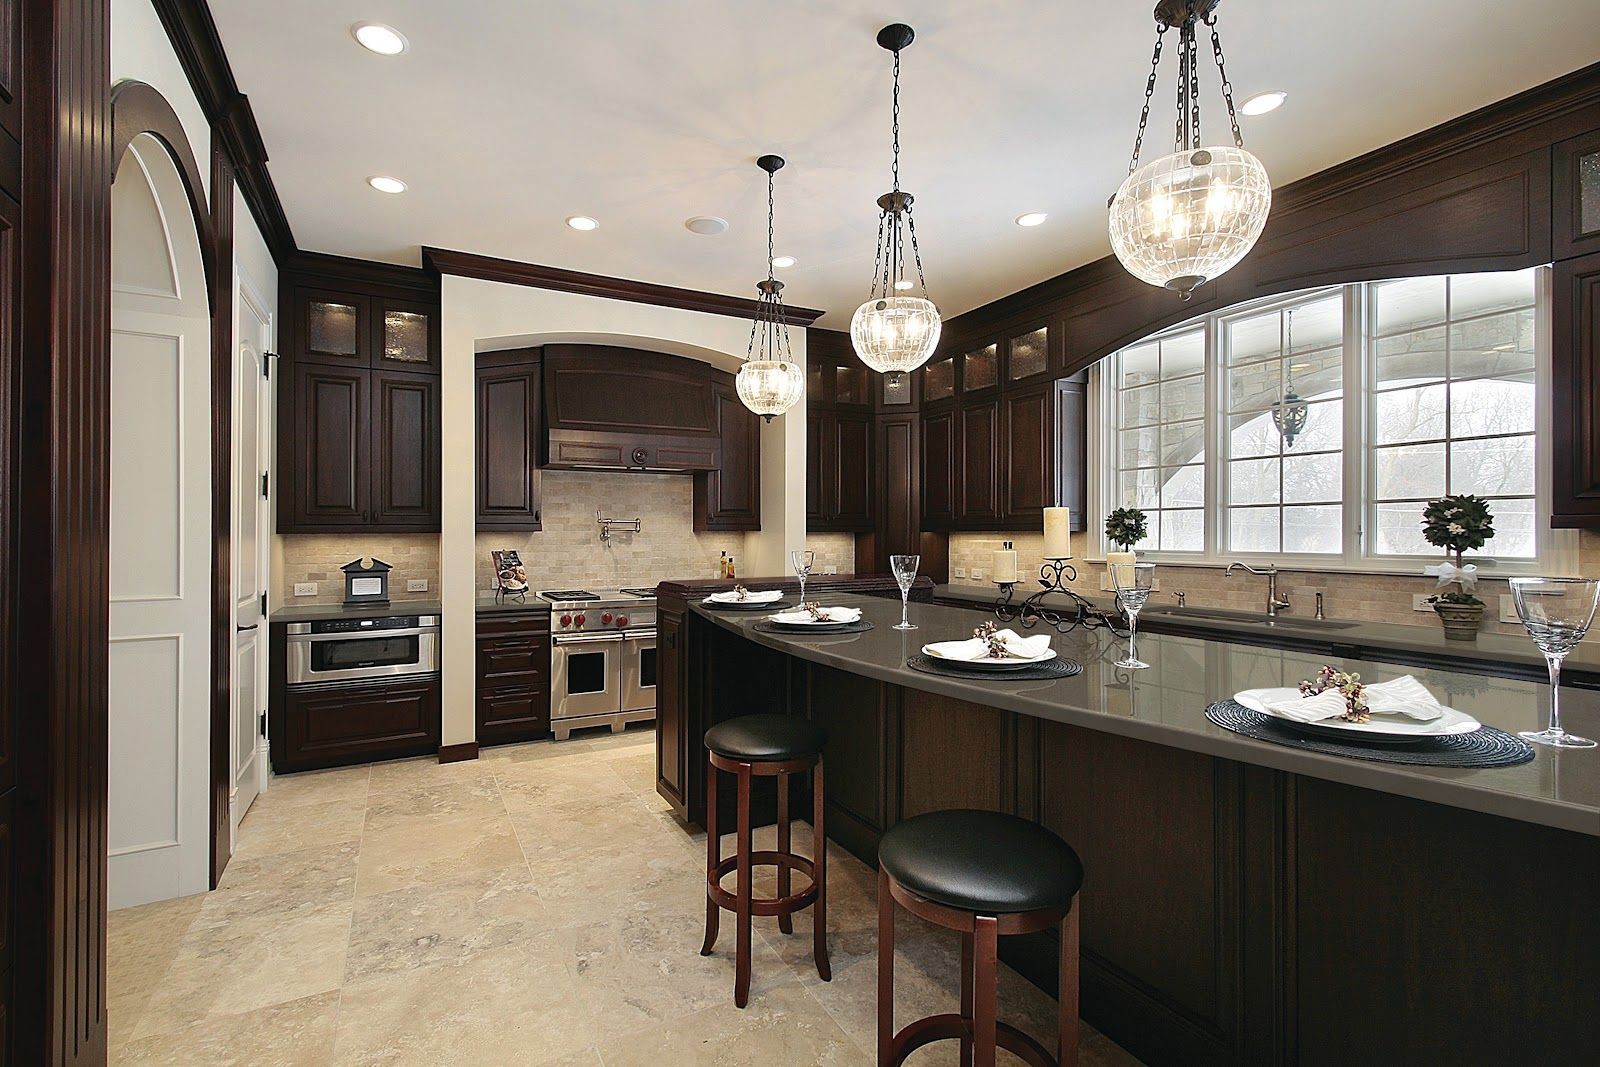 Elements Featured On Hgtv S Property Brothers Luxury Kitchen Design Kitchen Cabinets And Countertops Kitchen Cabinet Remodel